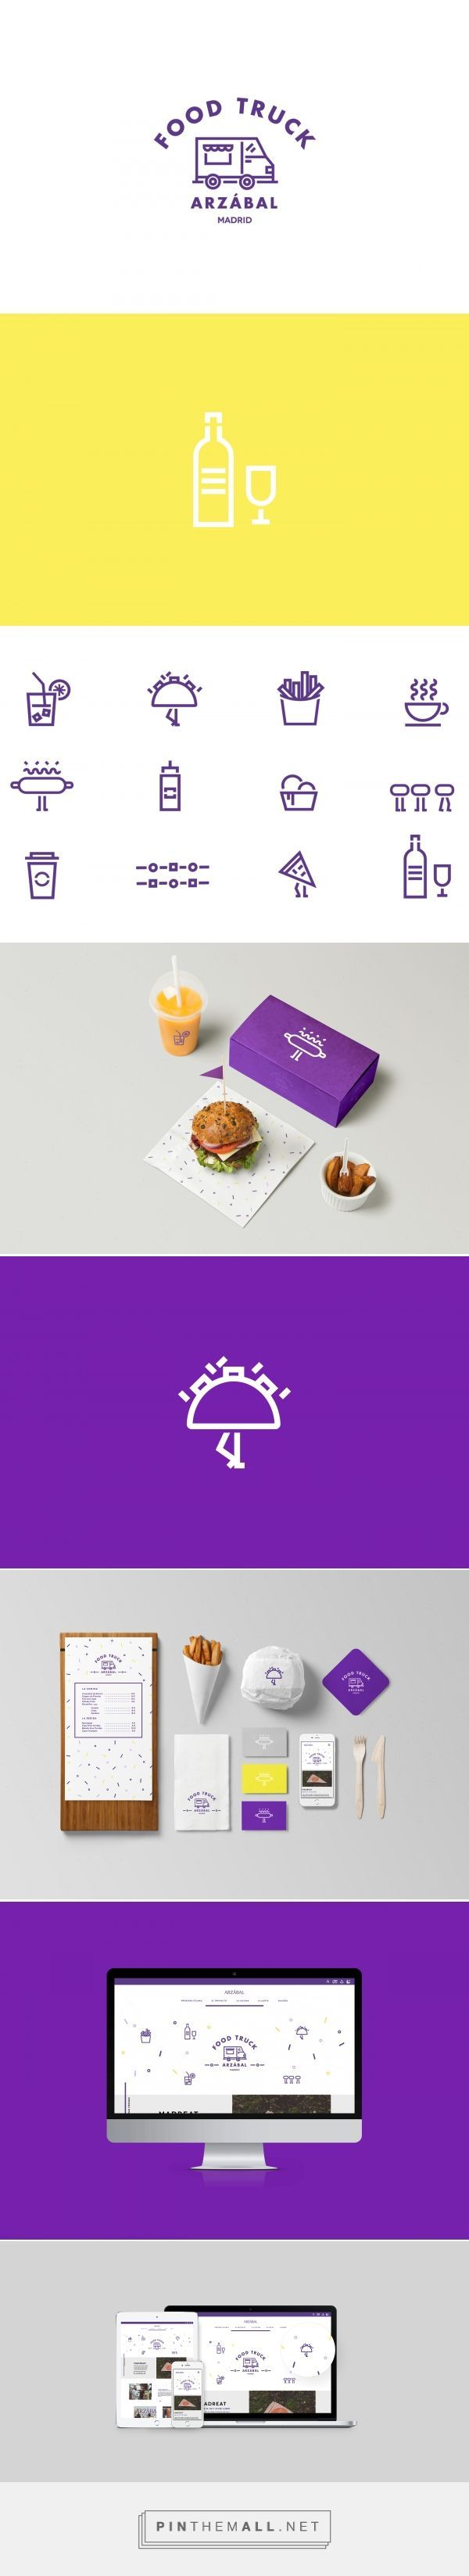 25 of the best food truck designs design galleries paste - Food Inspiration The Woork Co Arz Bal Food Truck Branding Website A Grouped Images Picture